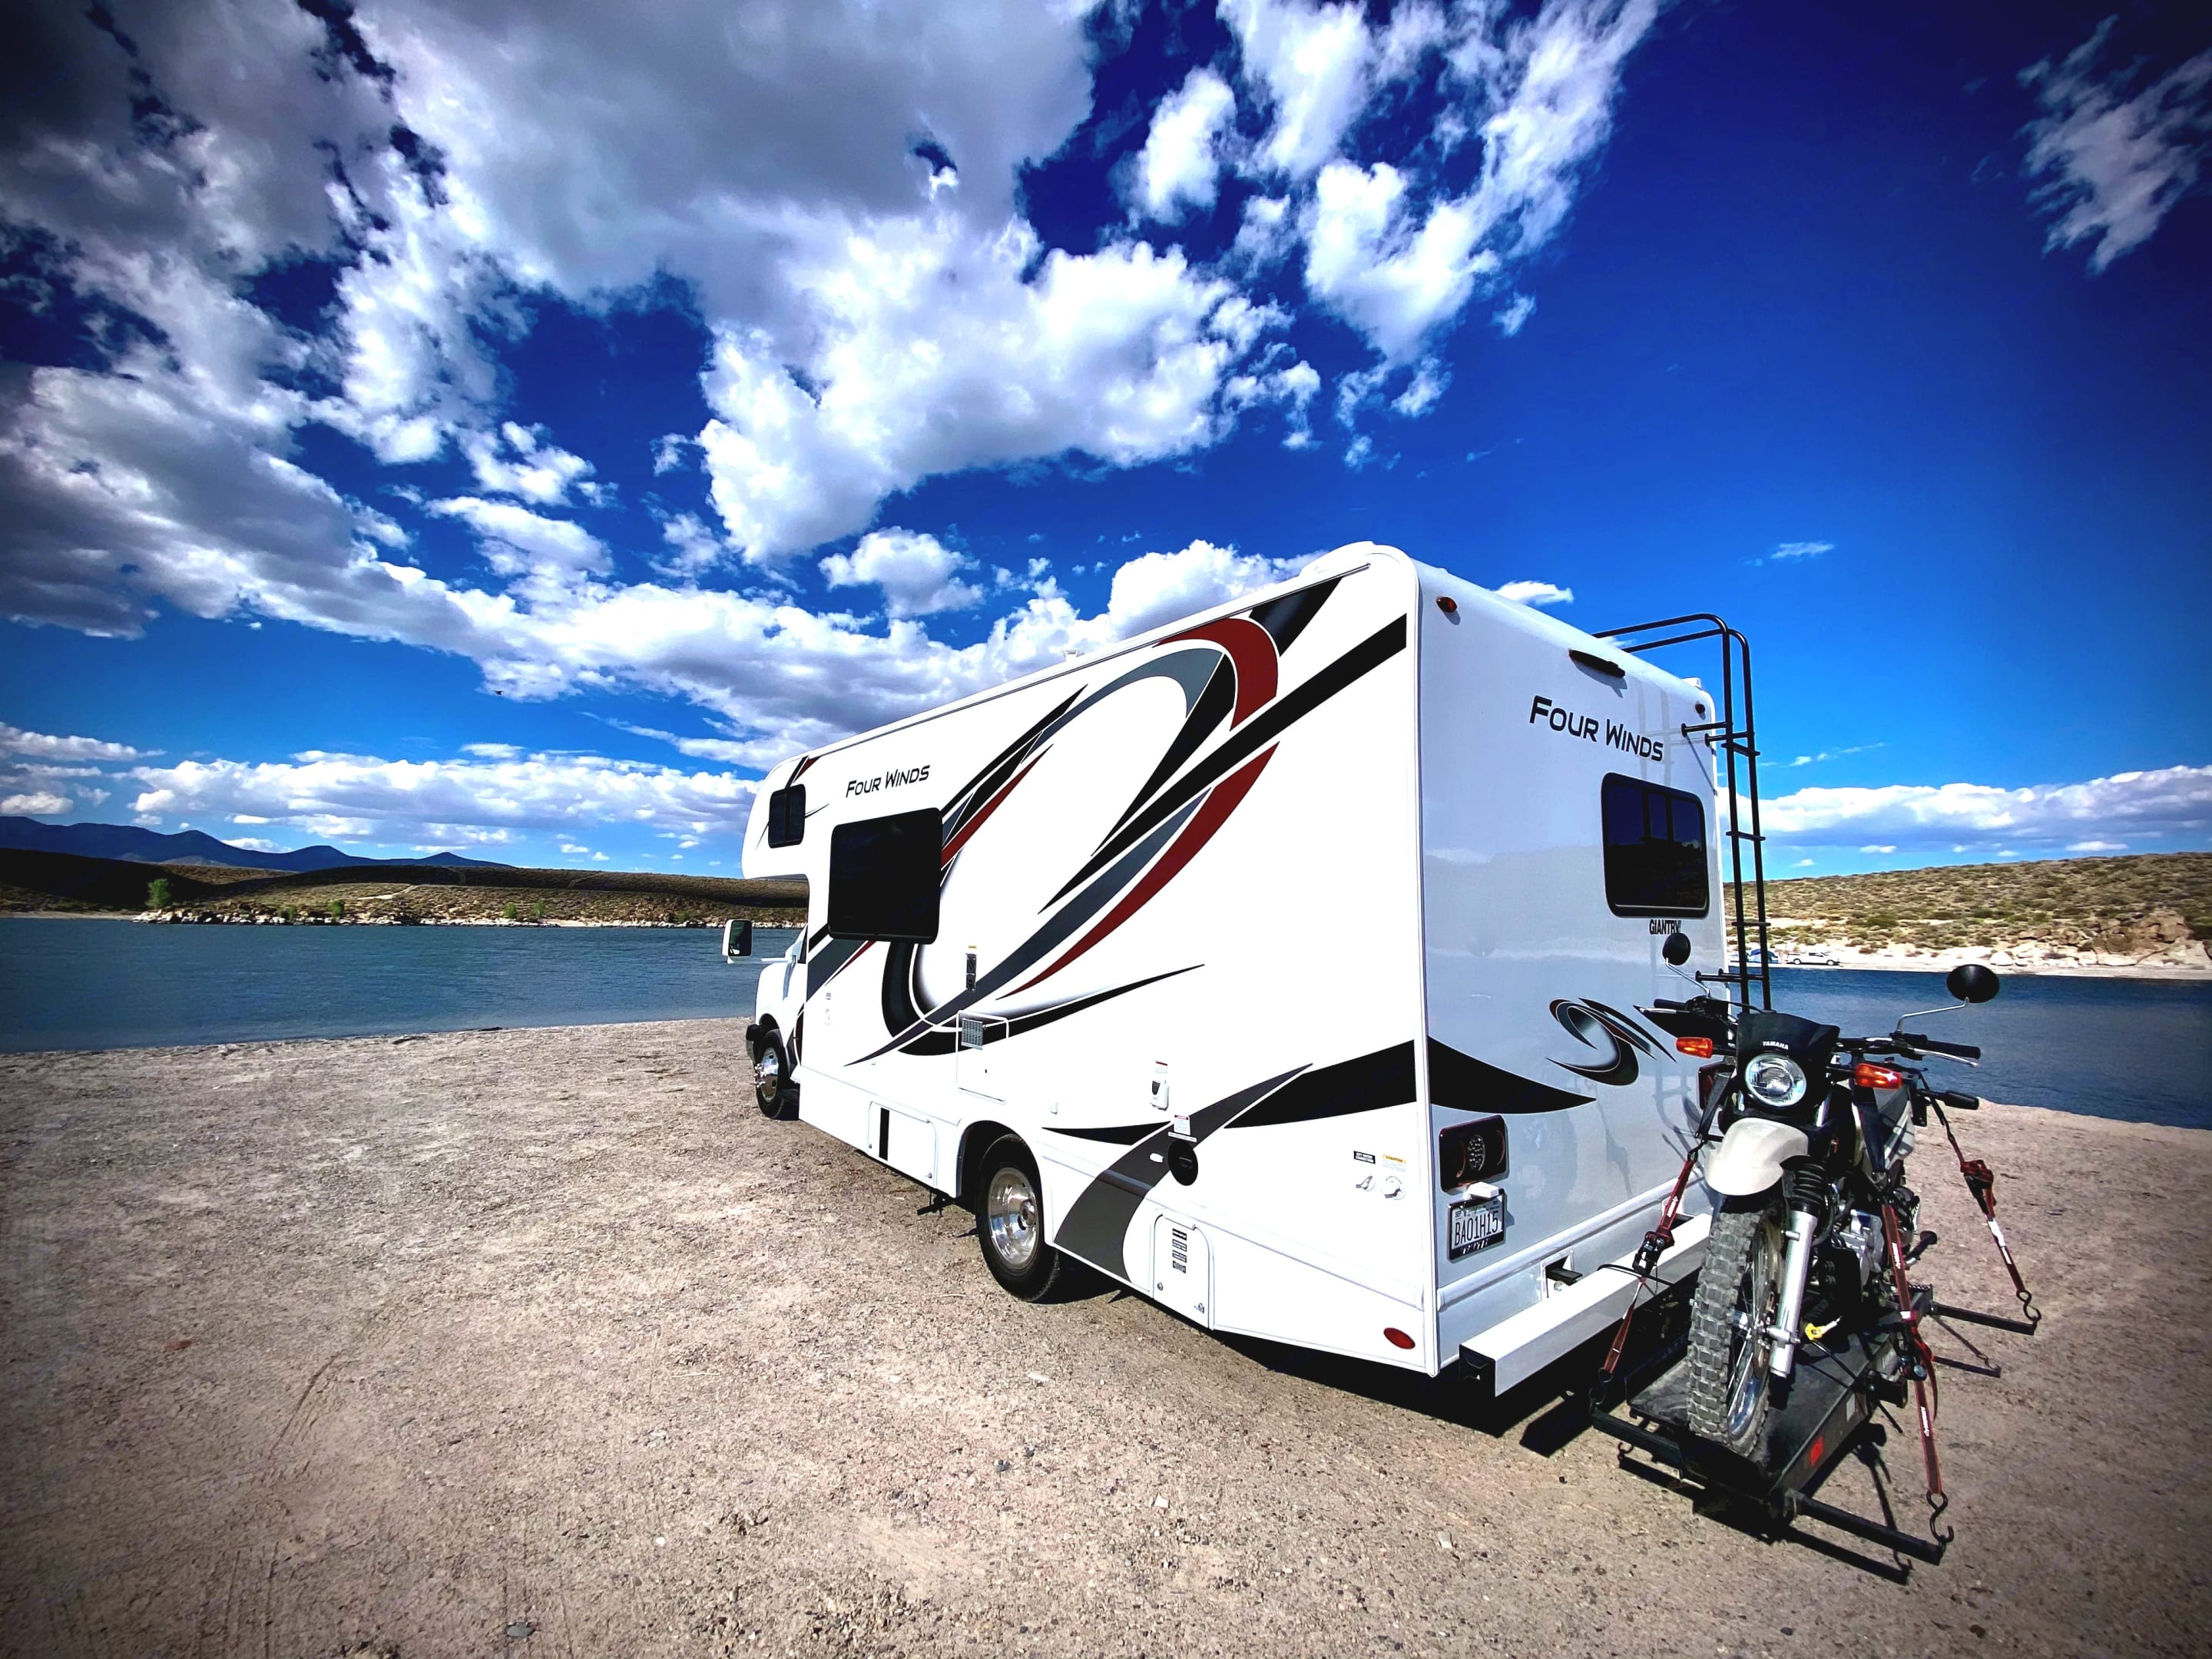 Optional Yamaha XT250  trail motorcycle, license required.. Thor Motor Coach Four Winds 2021